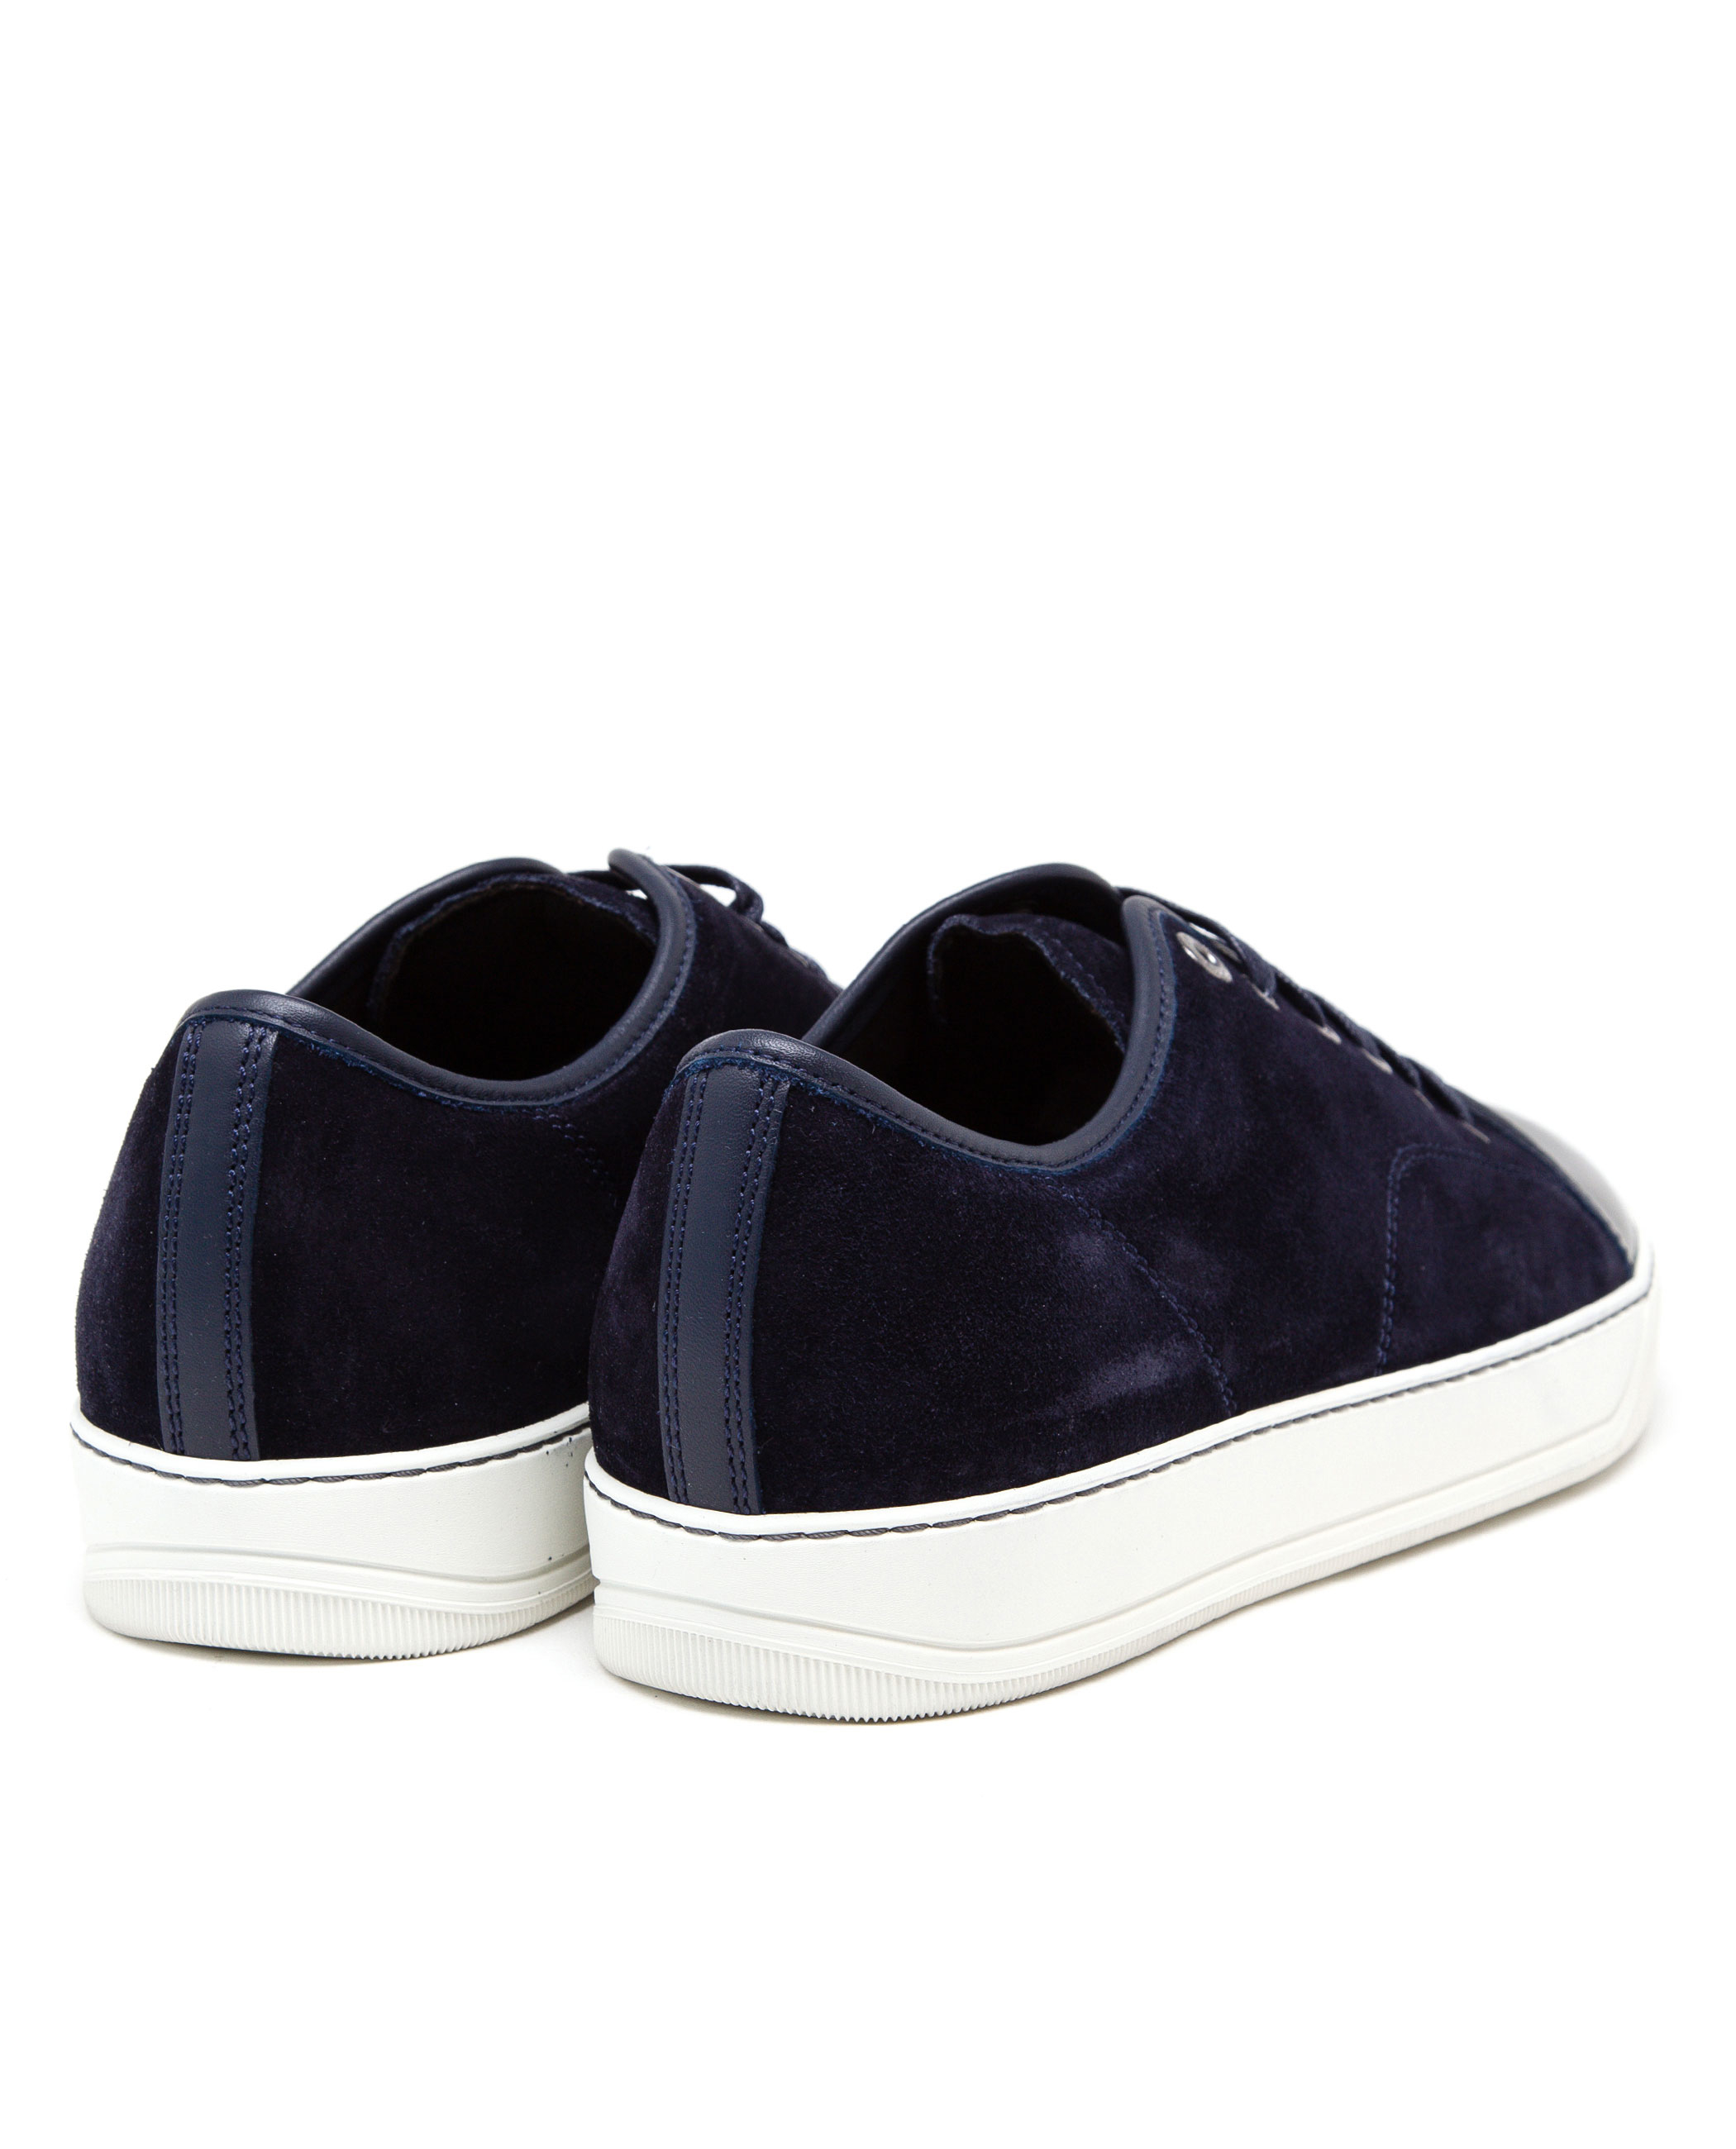 d68bf03232c4 Lyst - Lanvin Suede And Patent Leather Sneakers in Blue for Men